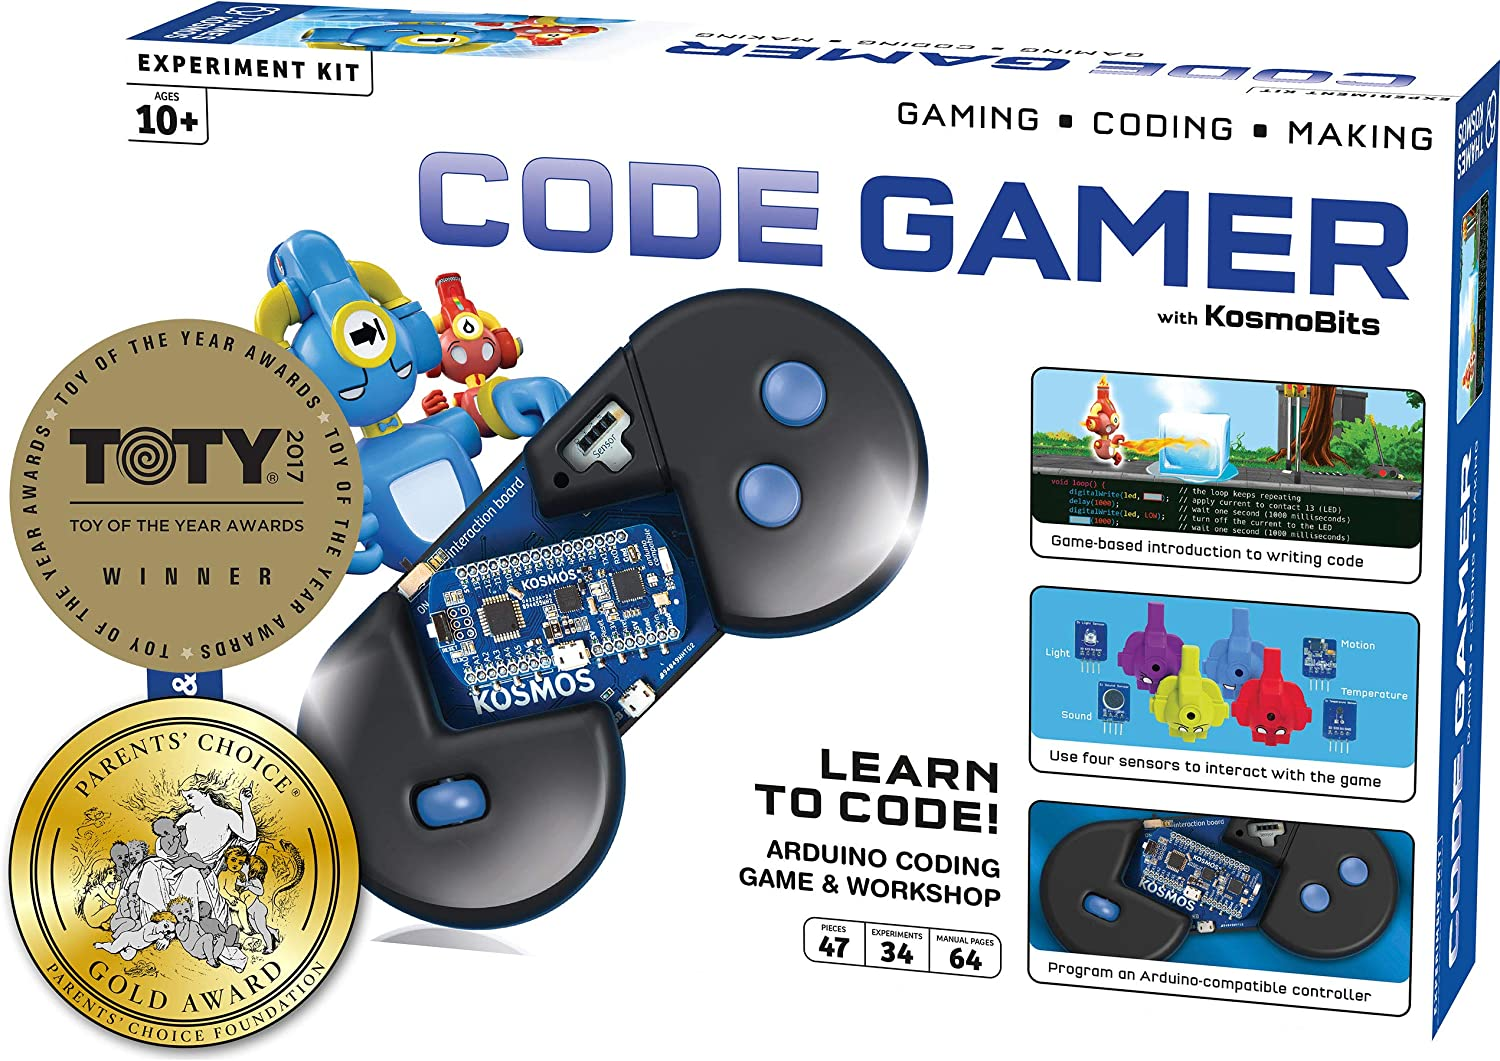 Thames & Kosmos Code Gamer: Coding Workshop & Game | Ios + Android Compatible | Learn To Code | Four Sensors | Powerful Arduino Board | Winner Toy of The Year Award | Parents' Choice Gold Award Winner